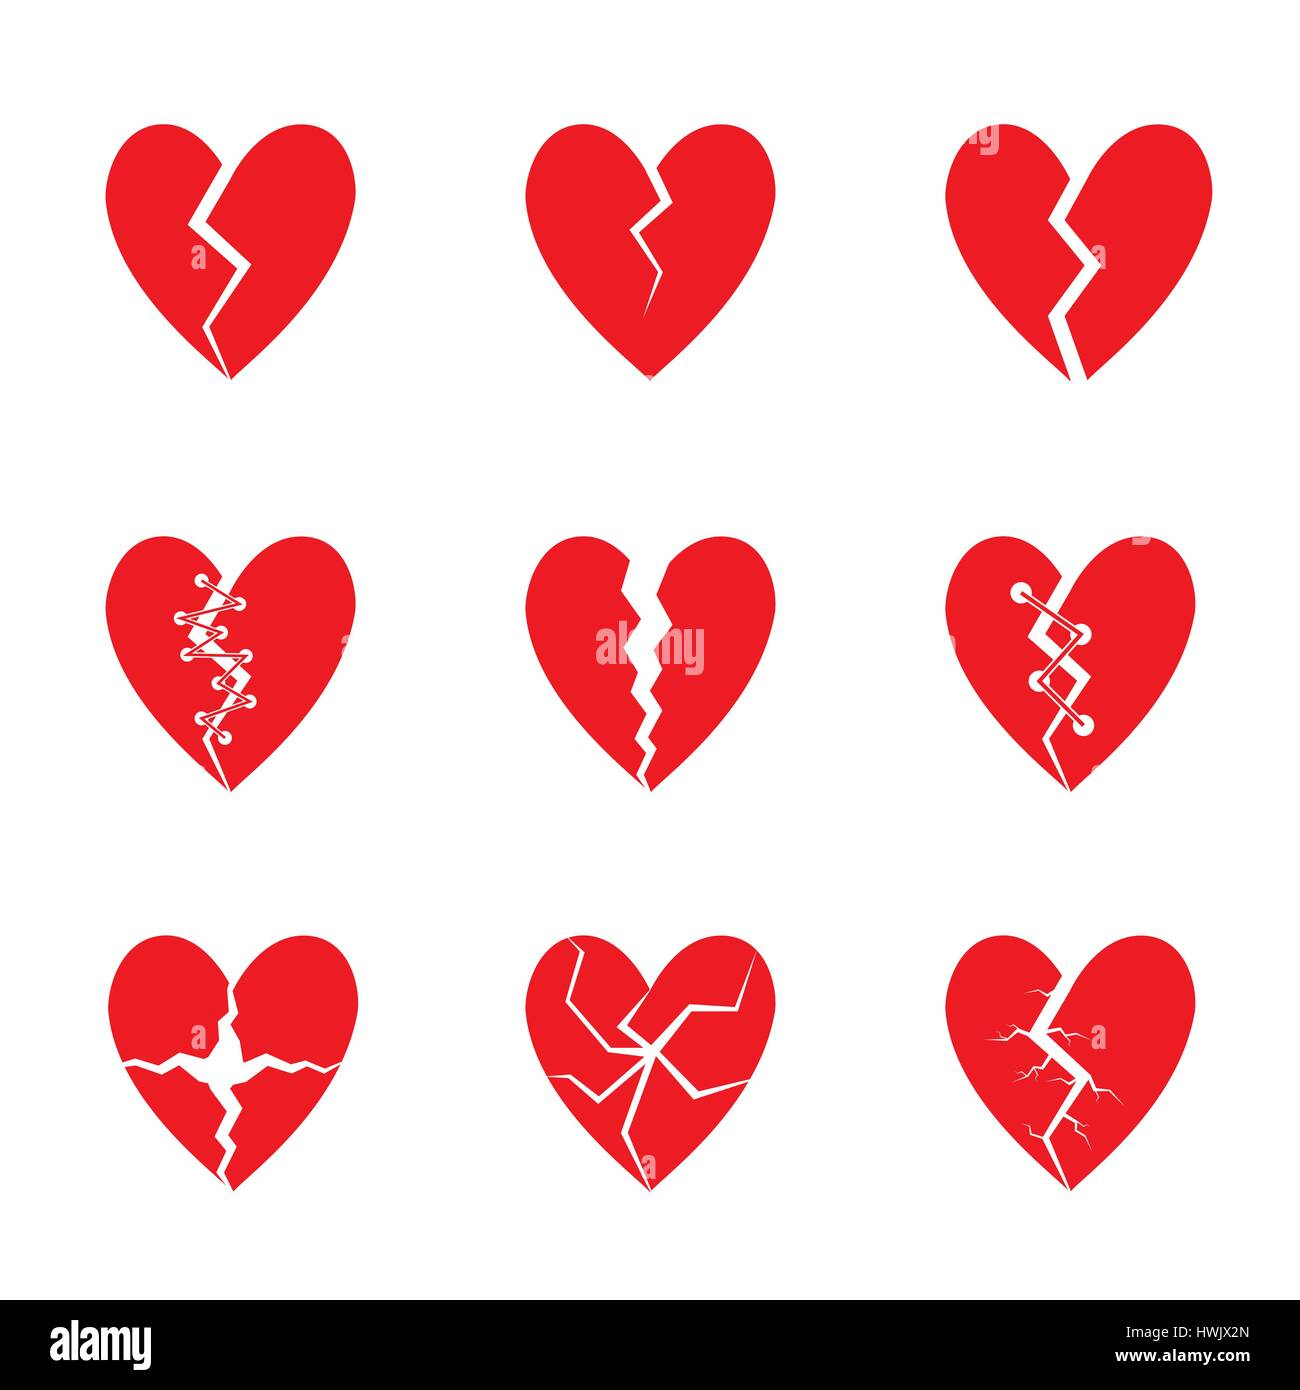 Red heart set - Stock Image